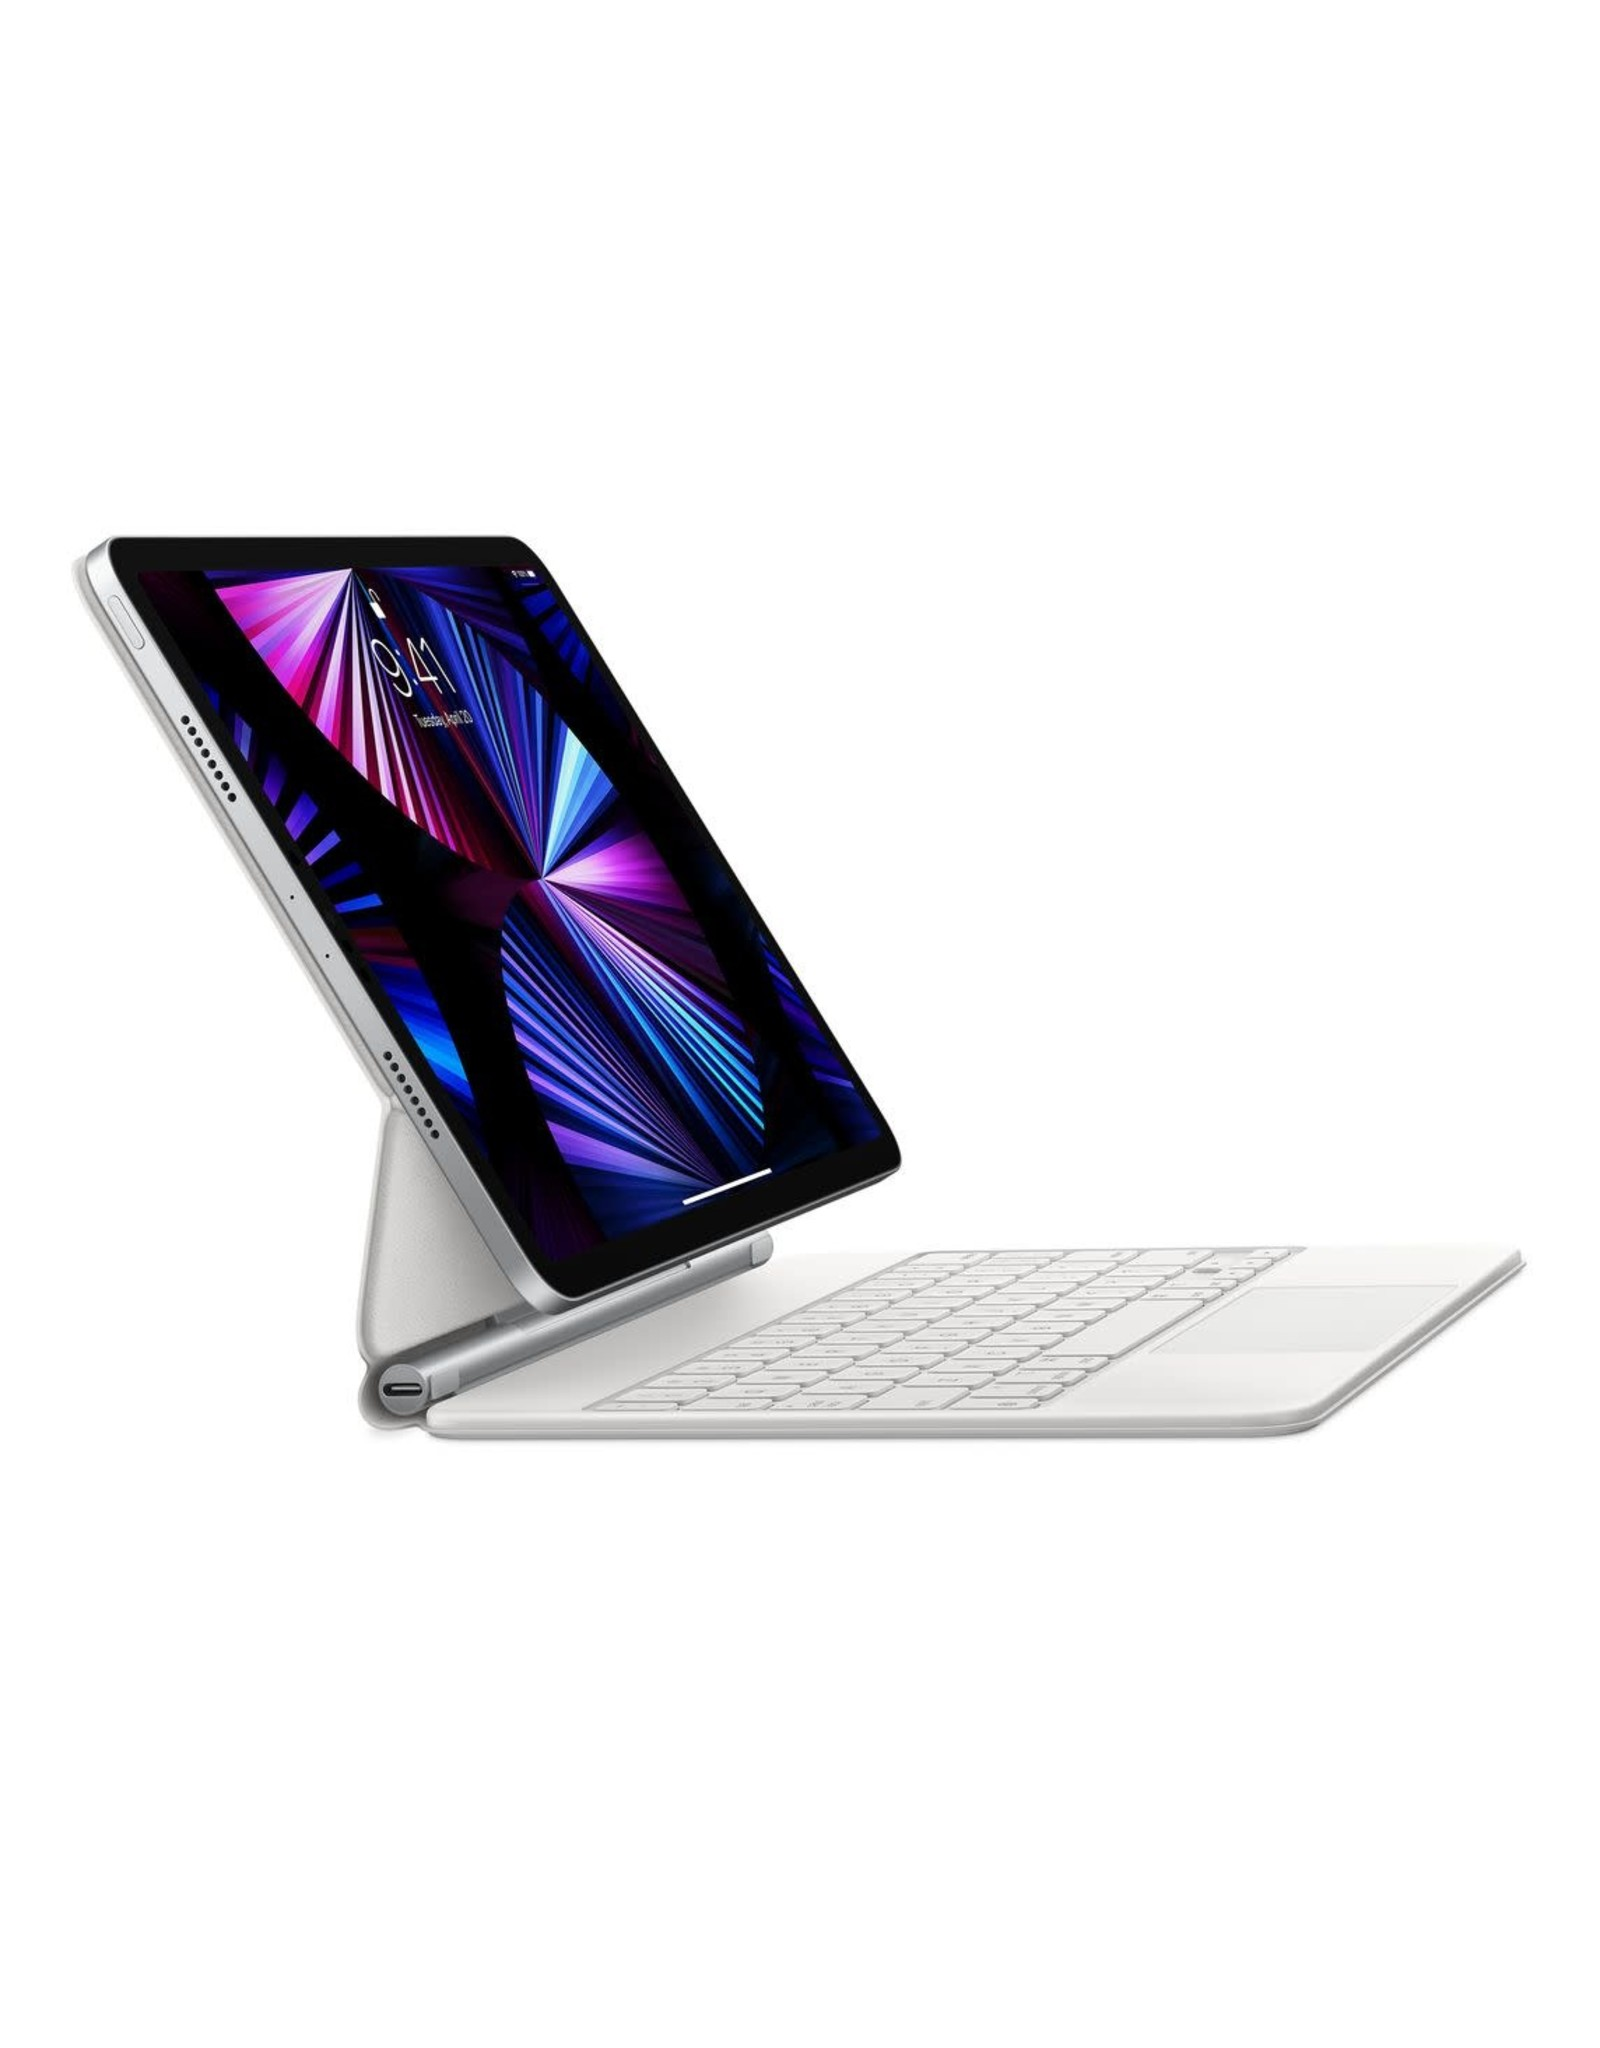 Apple Apple Magic Keyboard for iPad Pro 11-inch (1st/2nd/3rd gen) and iPad Air (4th gen) - White